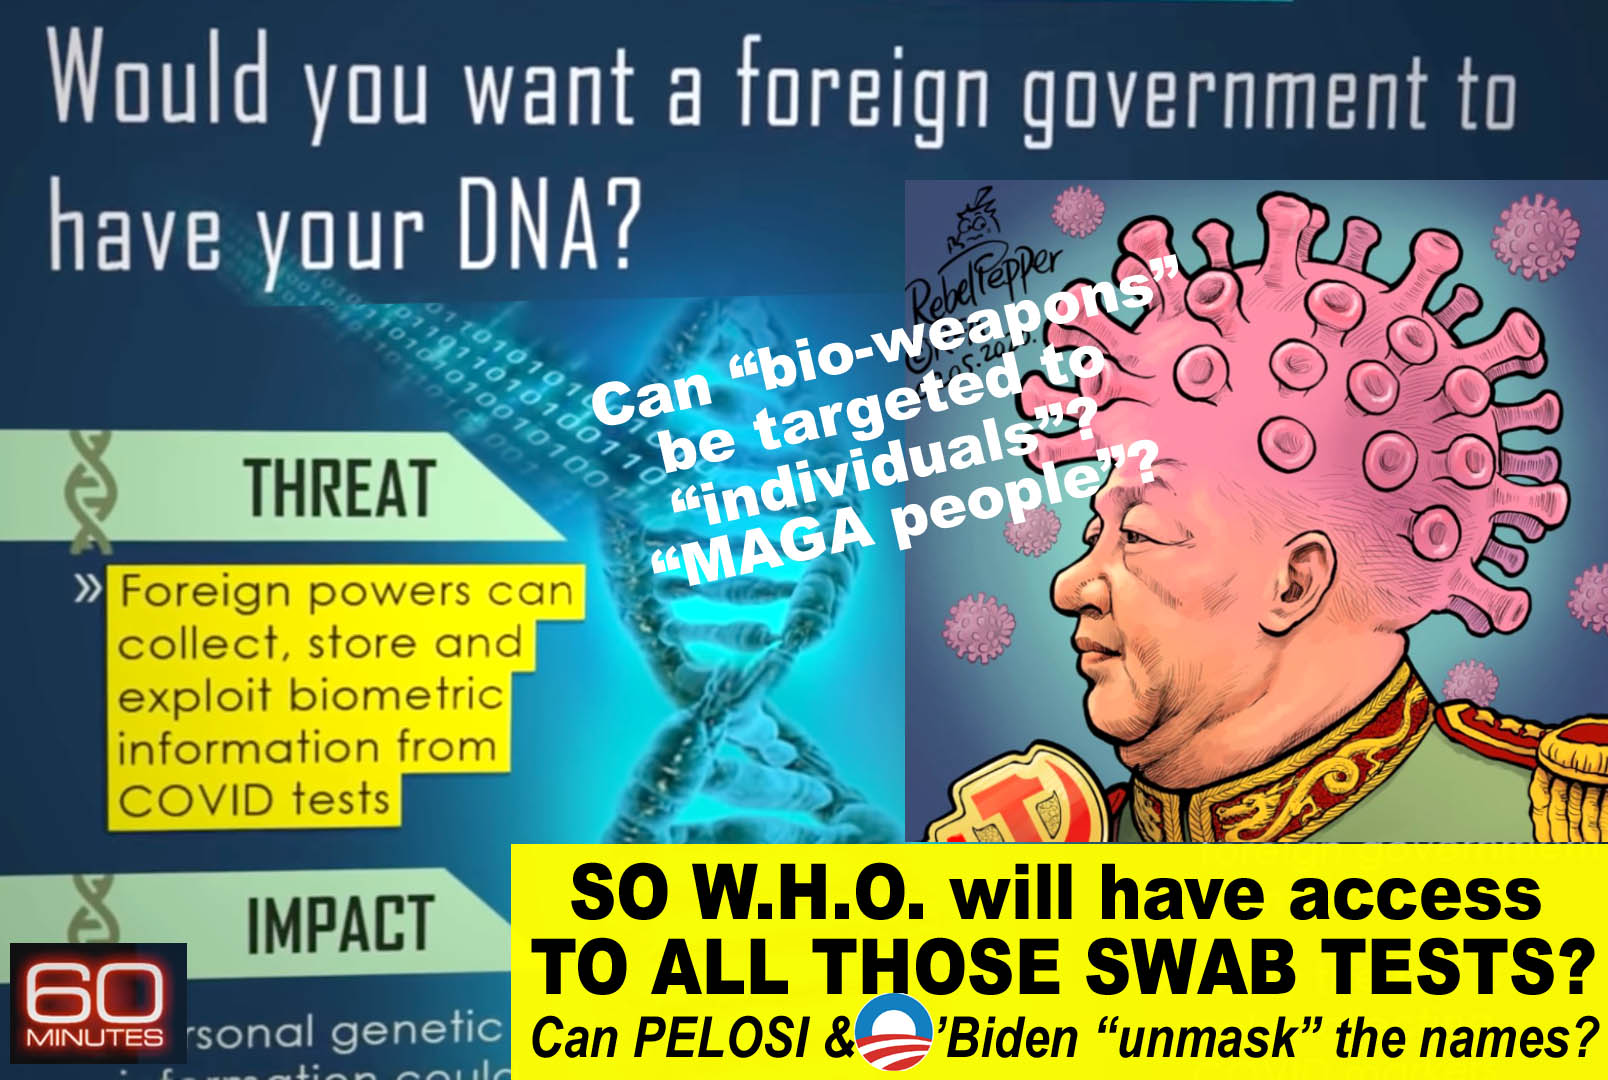 COVID-19 - TDNA TESTS - WHO WILL HAVE ACCESS TO THOSR SWABS - PELOSI UNMASK - JPEG.jpg